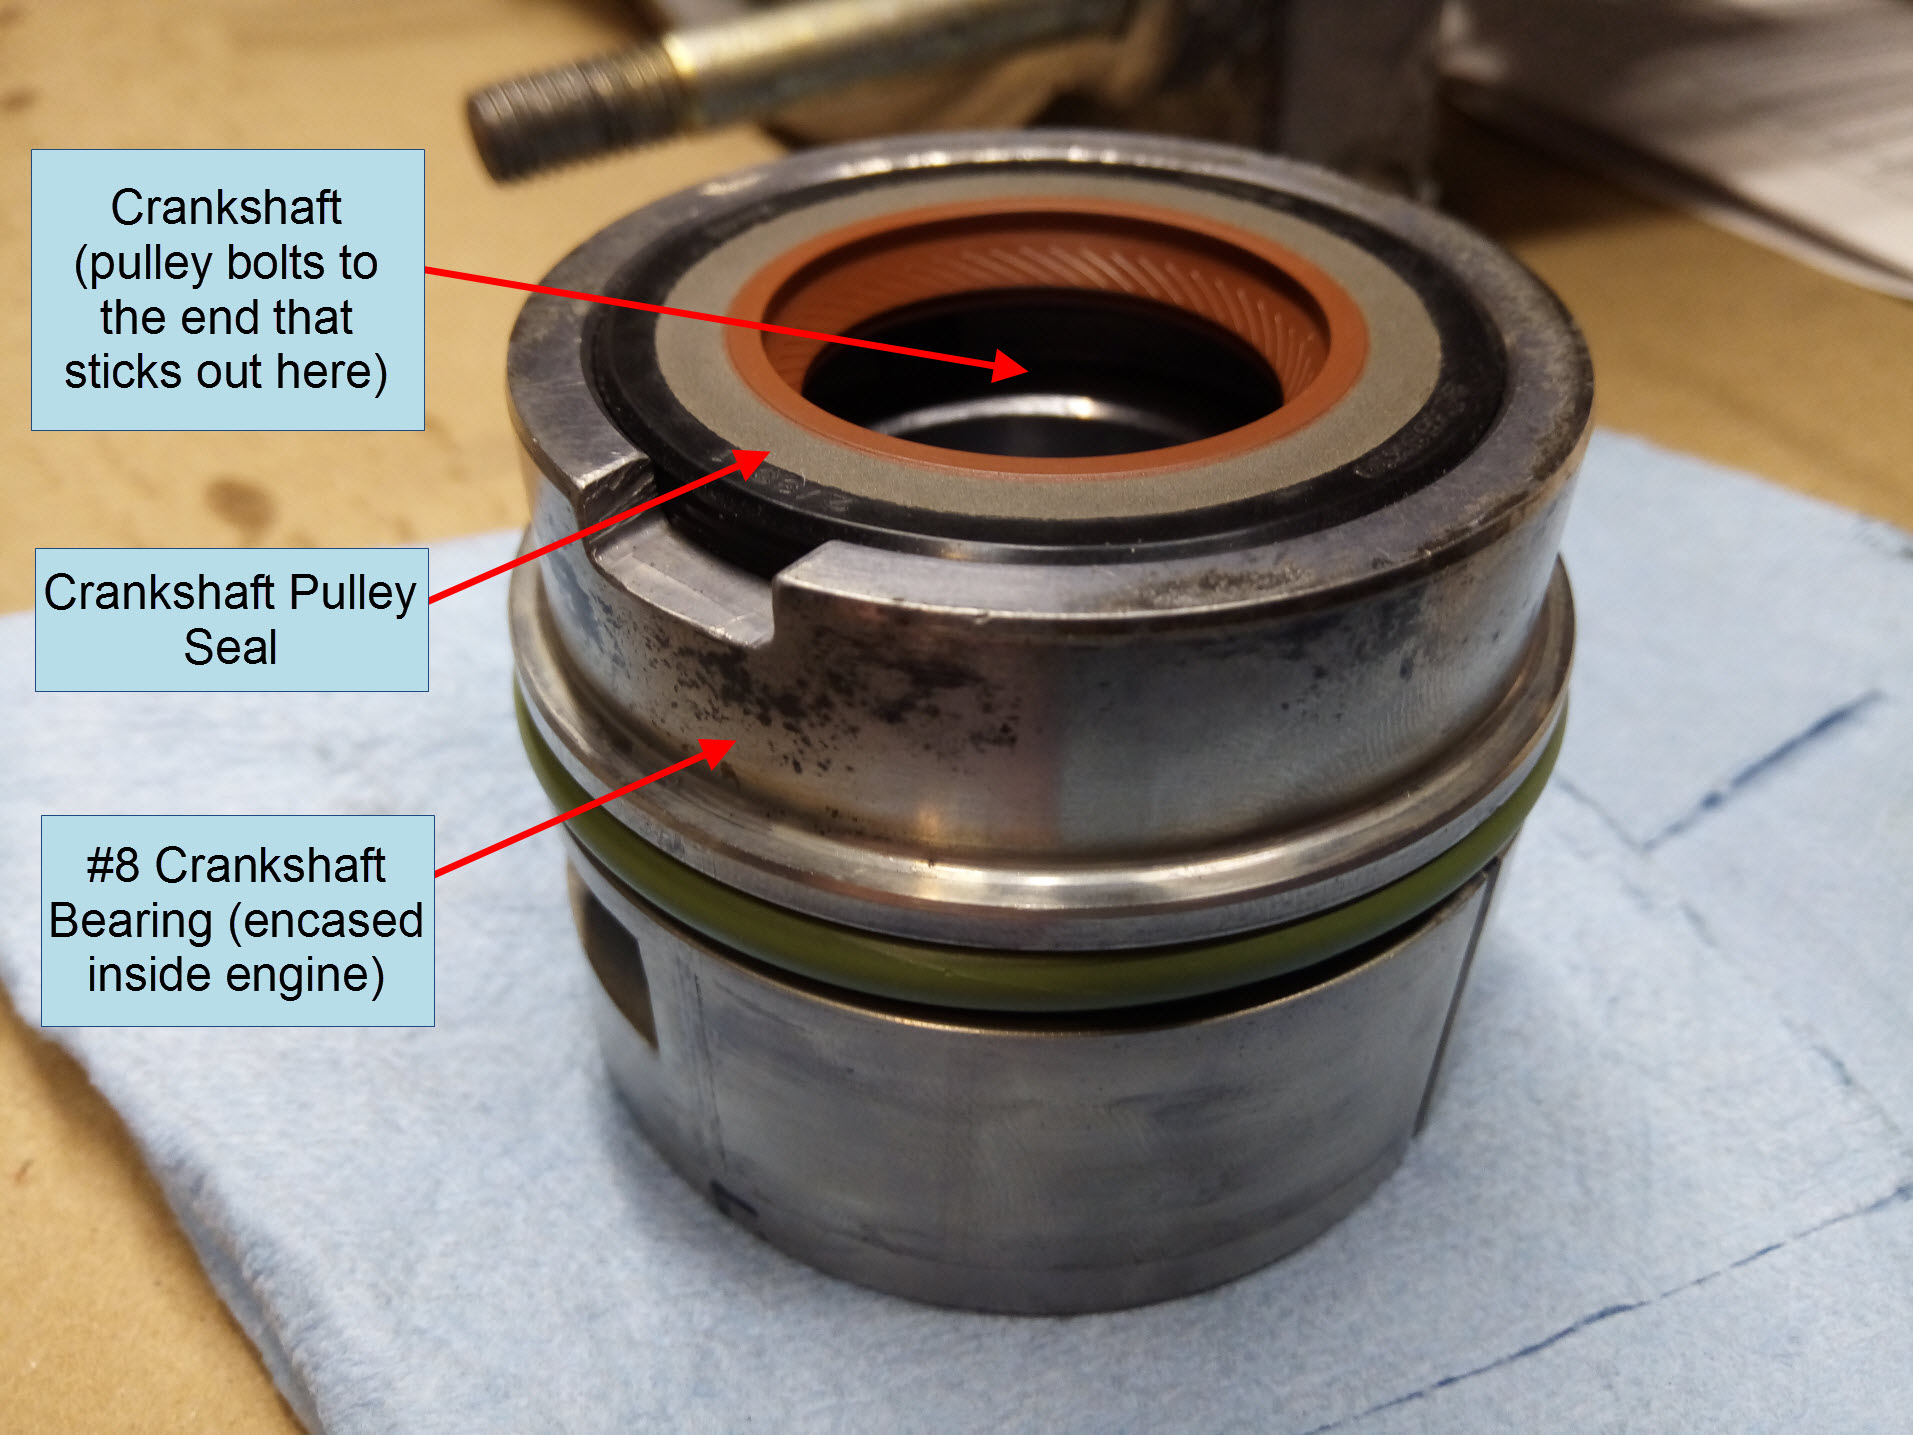 Air-cooled Porsche 911 crankshaft pulley seal.